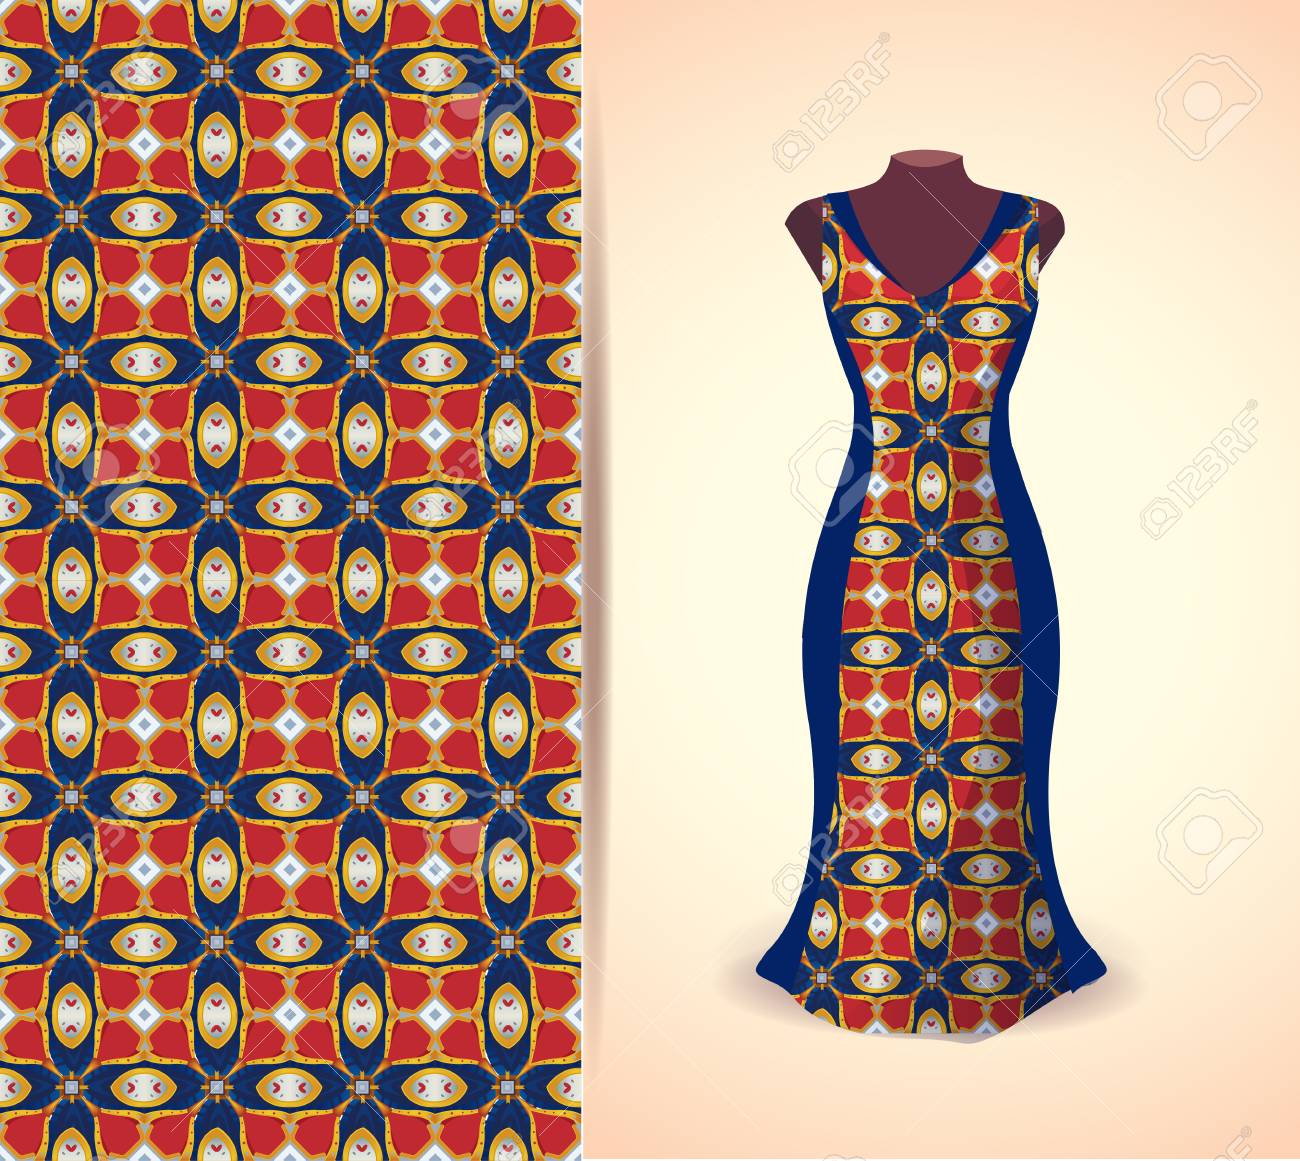 Vector Fashion Illustration Women S Dress On A Dummy Seamless Royalty Free Cliparts Vectors And Stock Illustration Image 59866275